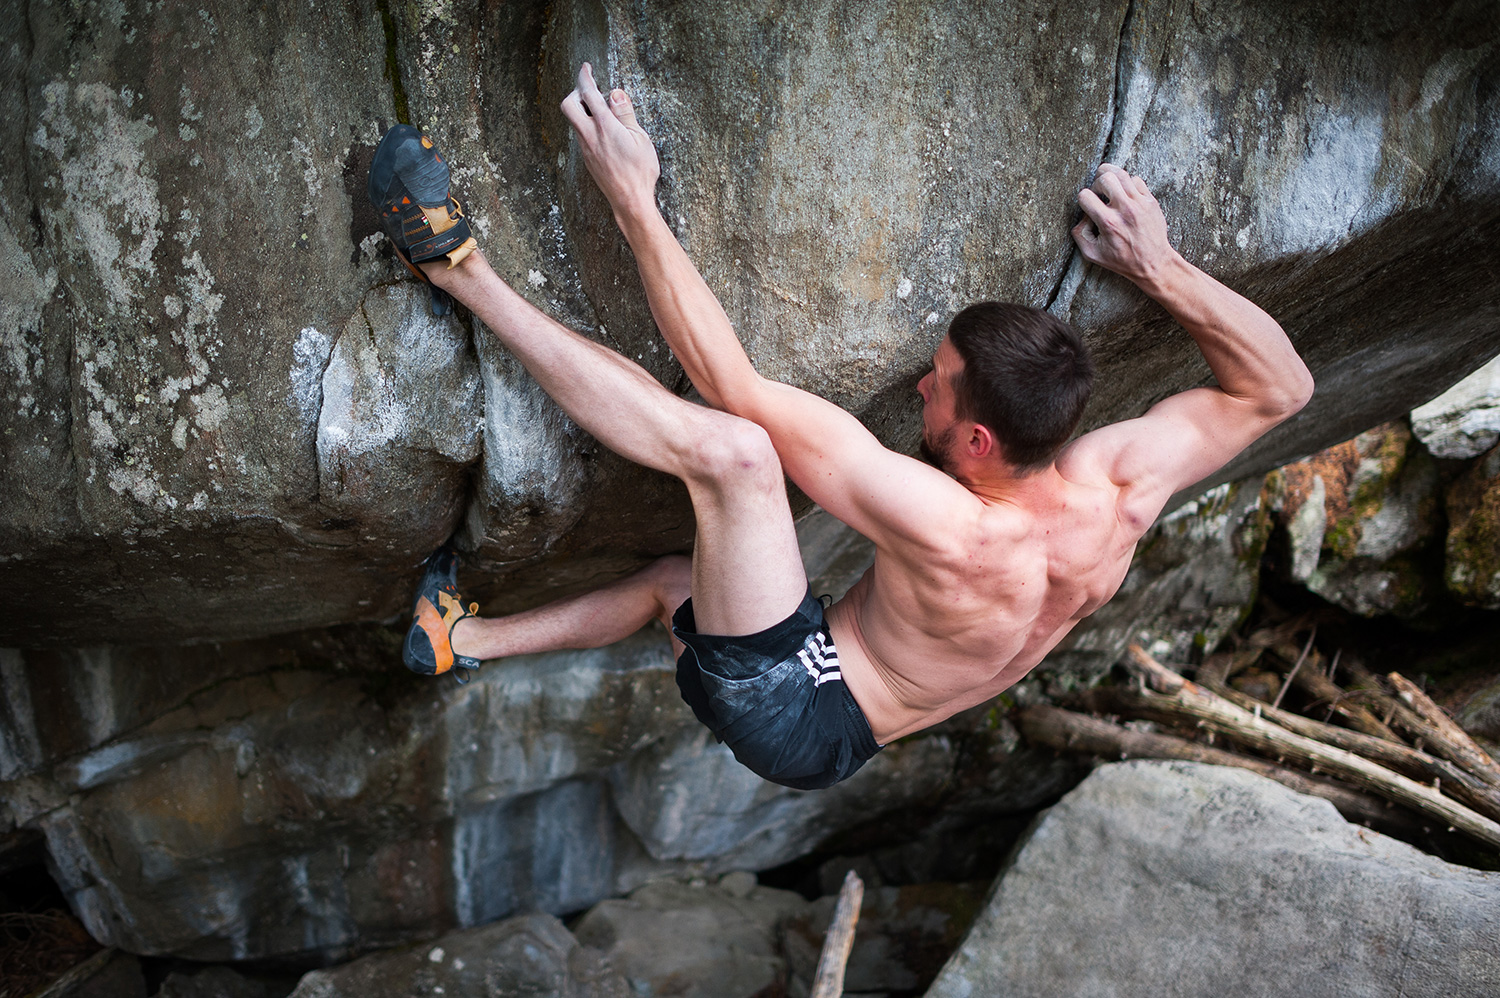 Jernej Kruder sending Riders on the Storm 8b, Magic Wood